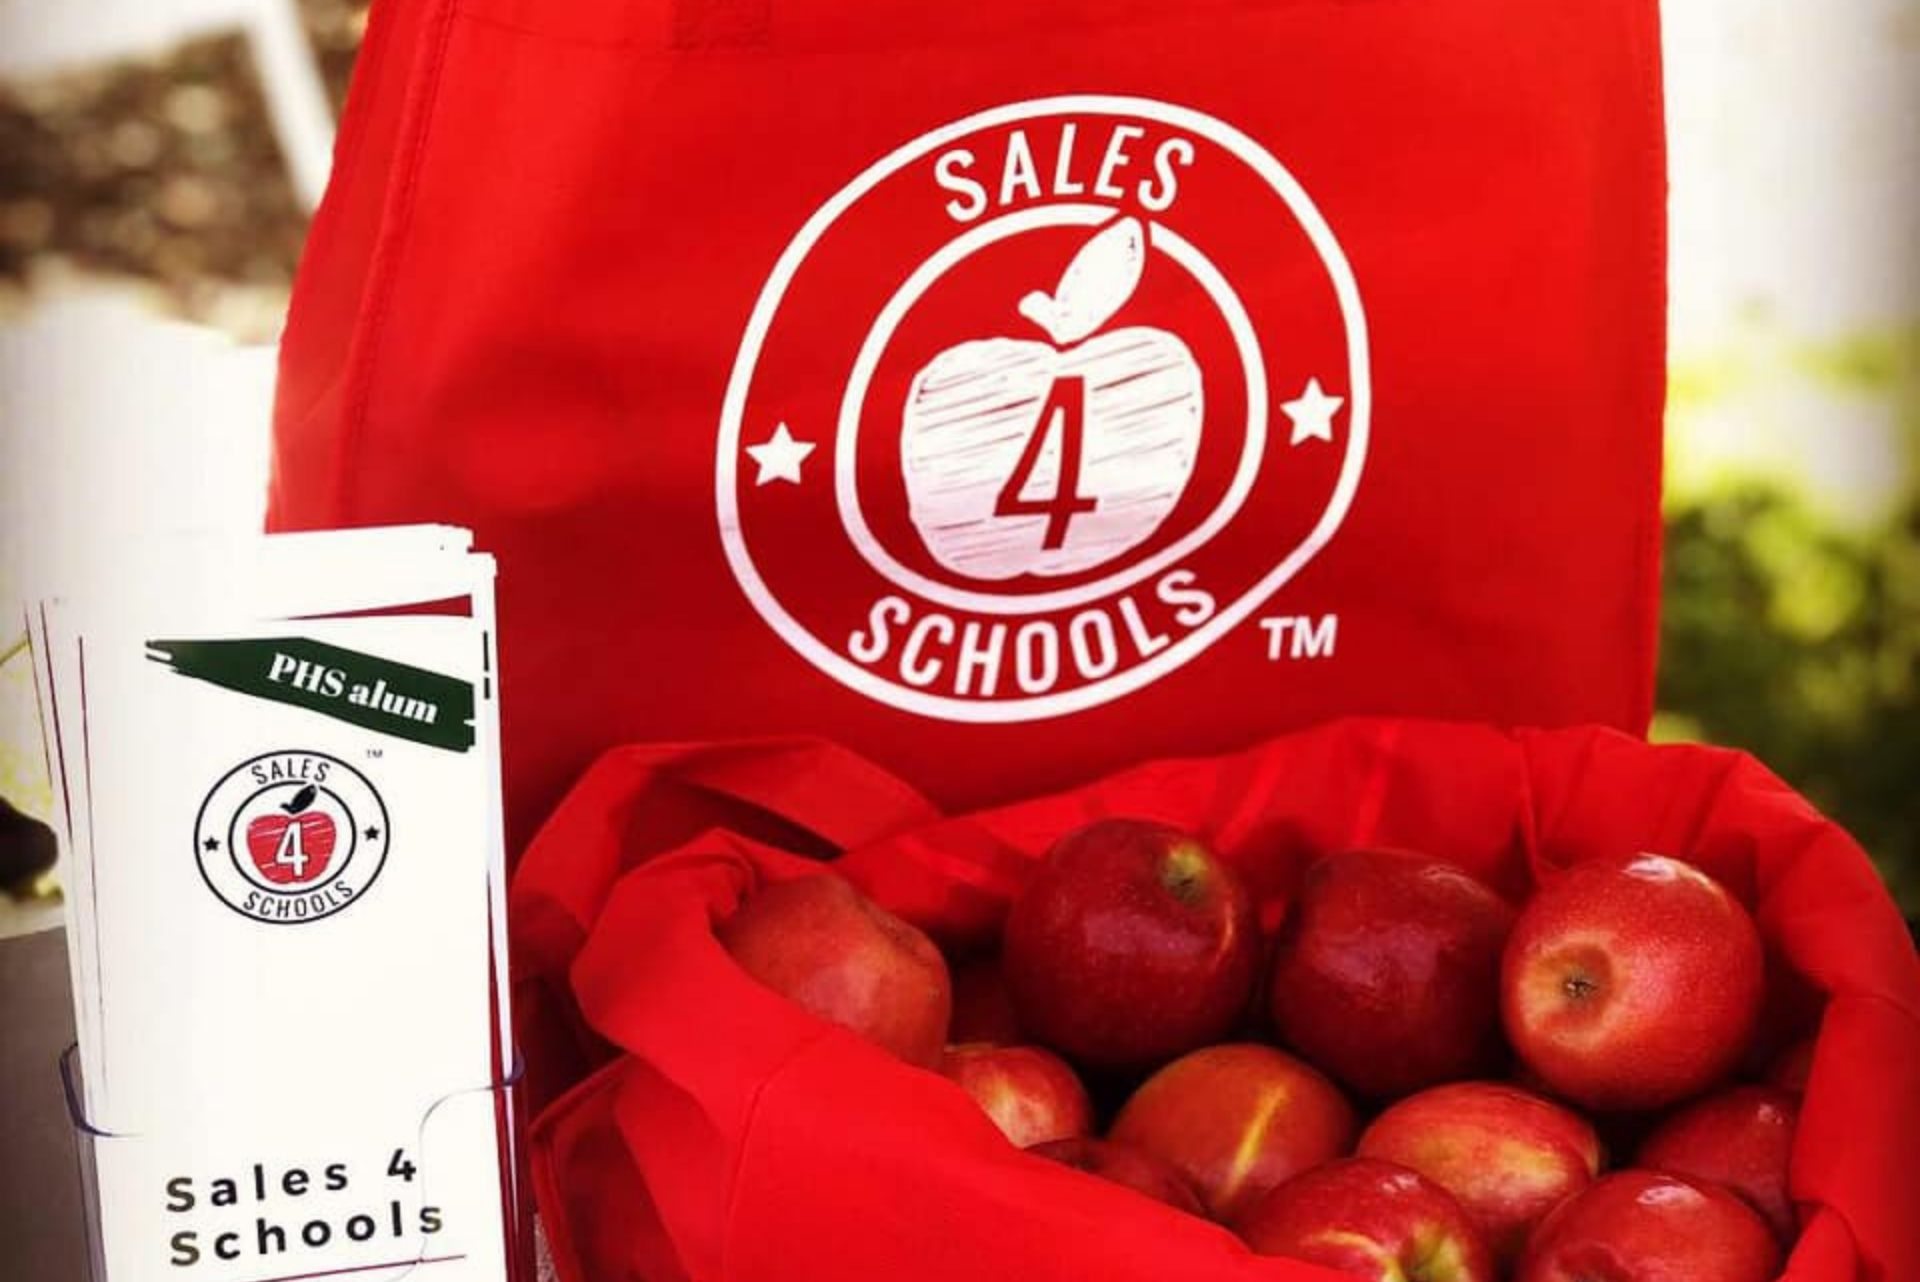 sales 4 schools shopping tote apples